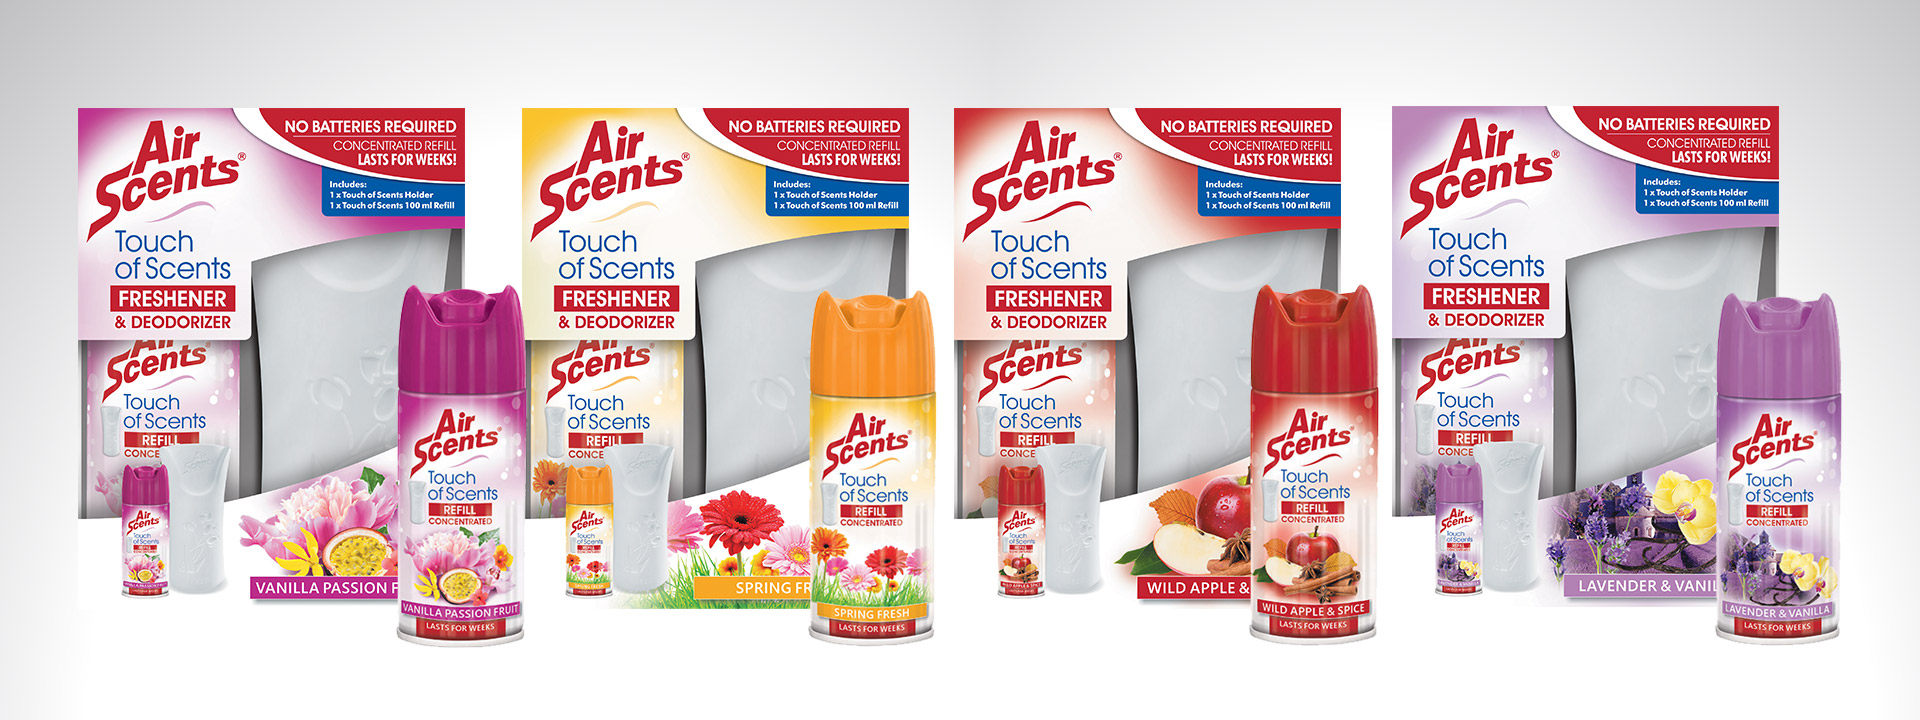 Air Scents | Touch of Scents | Freshener and Deodorizer